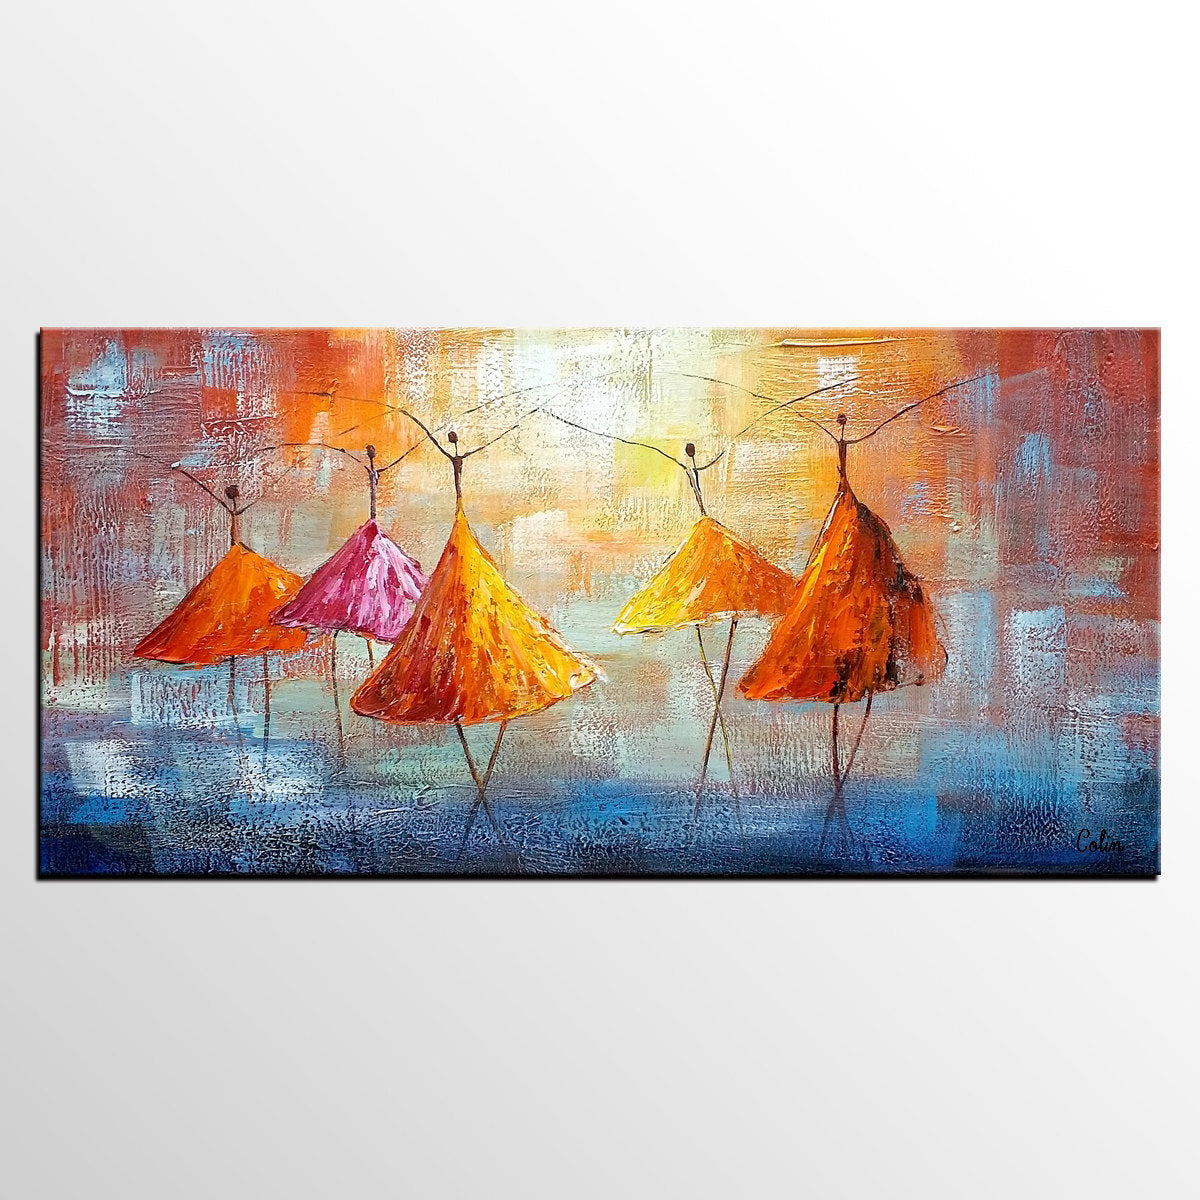 Abstract Artwork, Contemporary Artwork, Ballet Dancer Painting, Painting for Sale, Original Painting - Paintingforhome